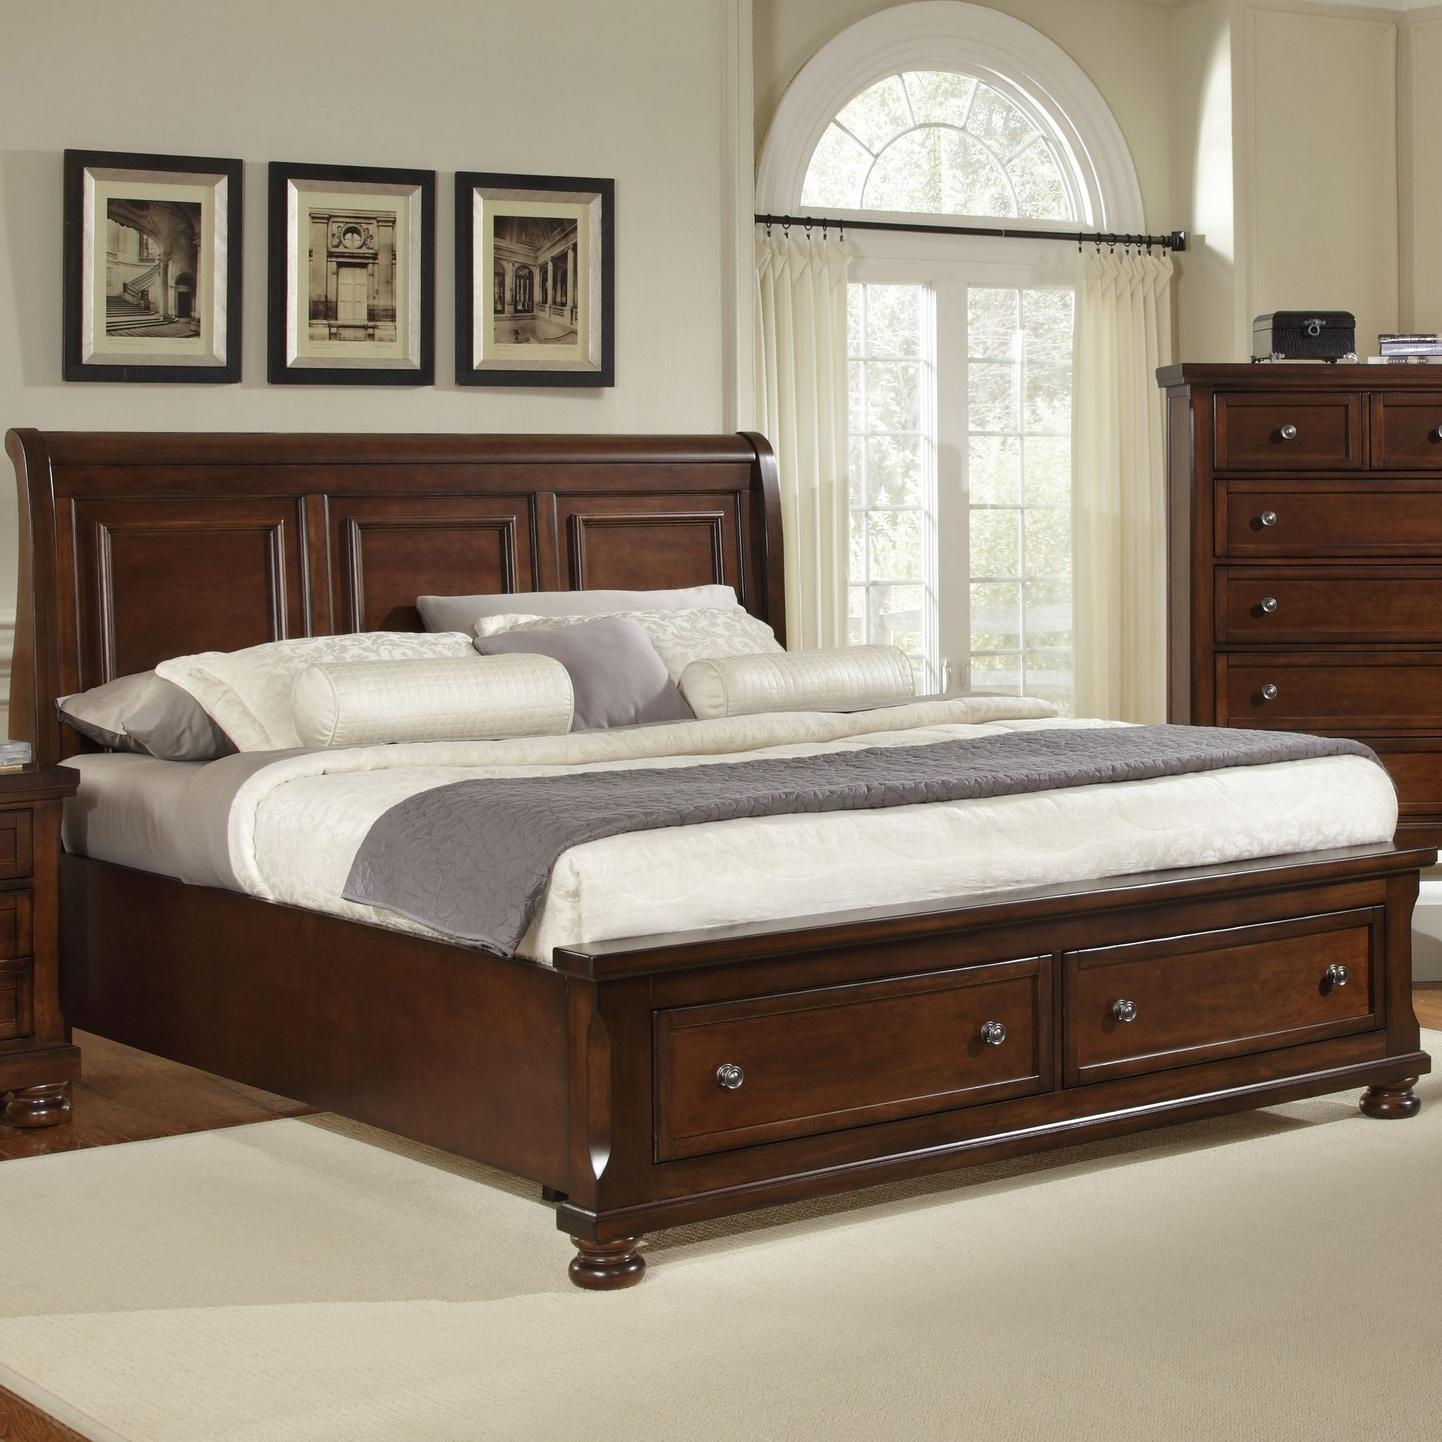 king storage bed with sleigh headboard by vaughan bassett. Black Bedroom Furniture Sets. Home Design Ideas